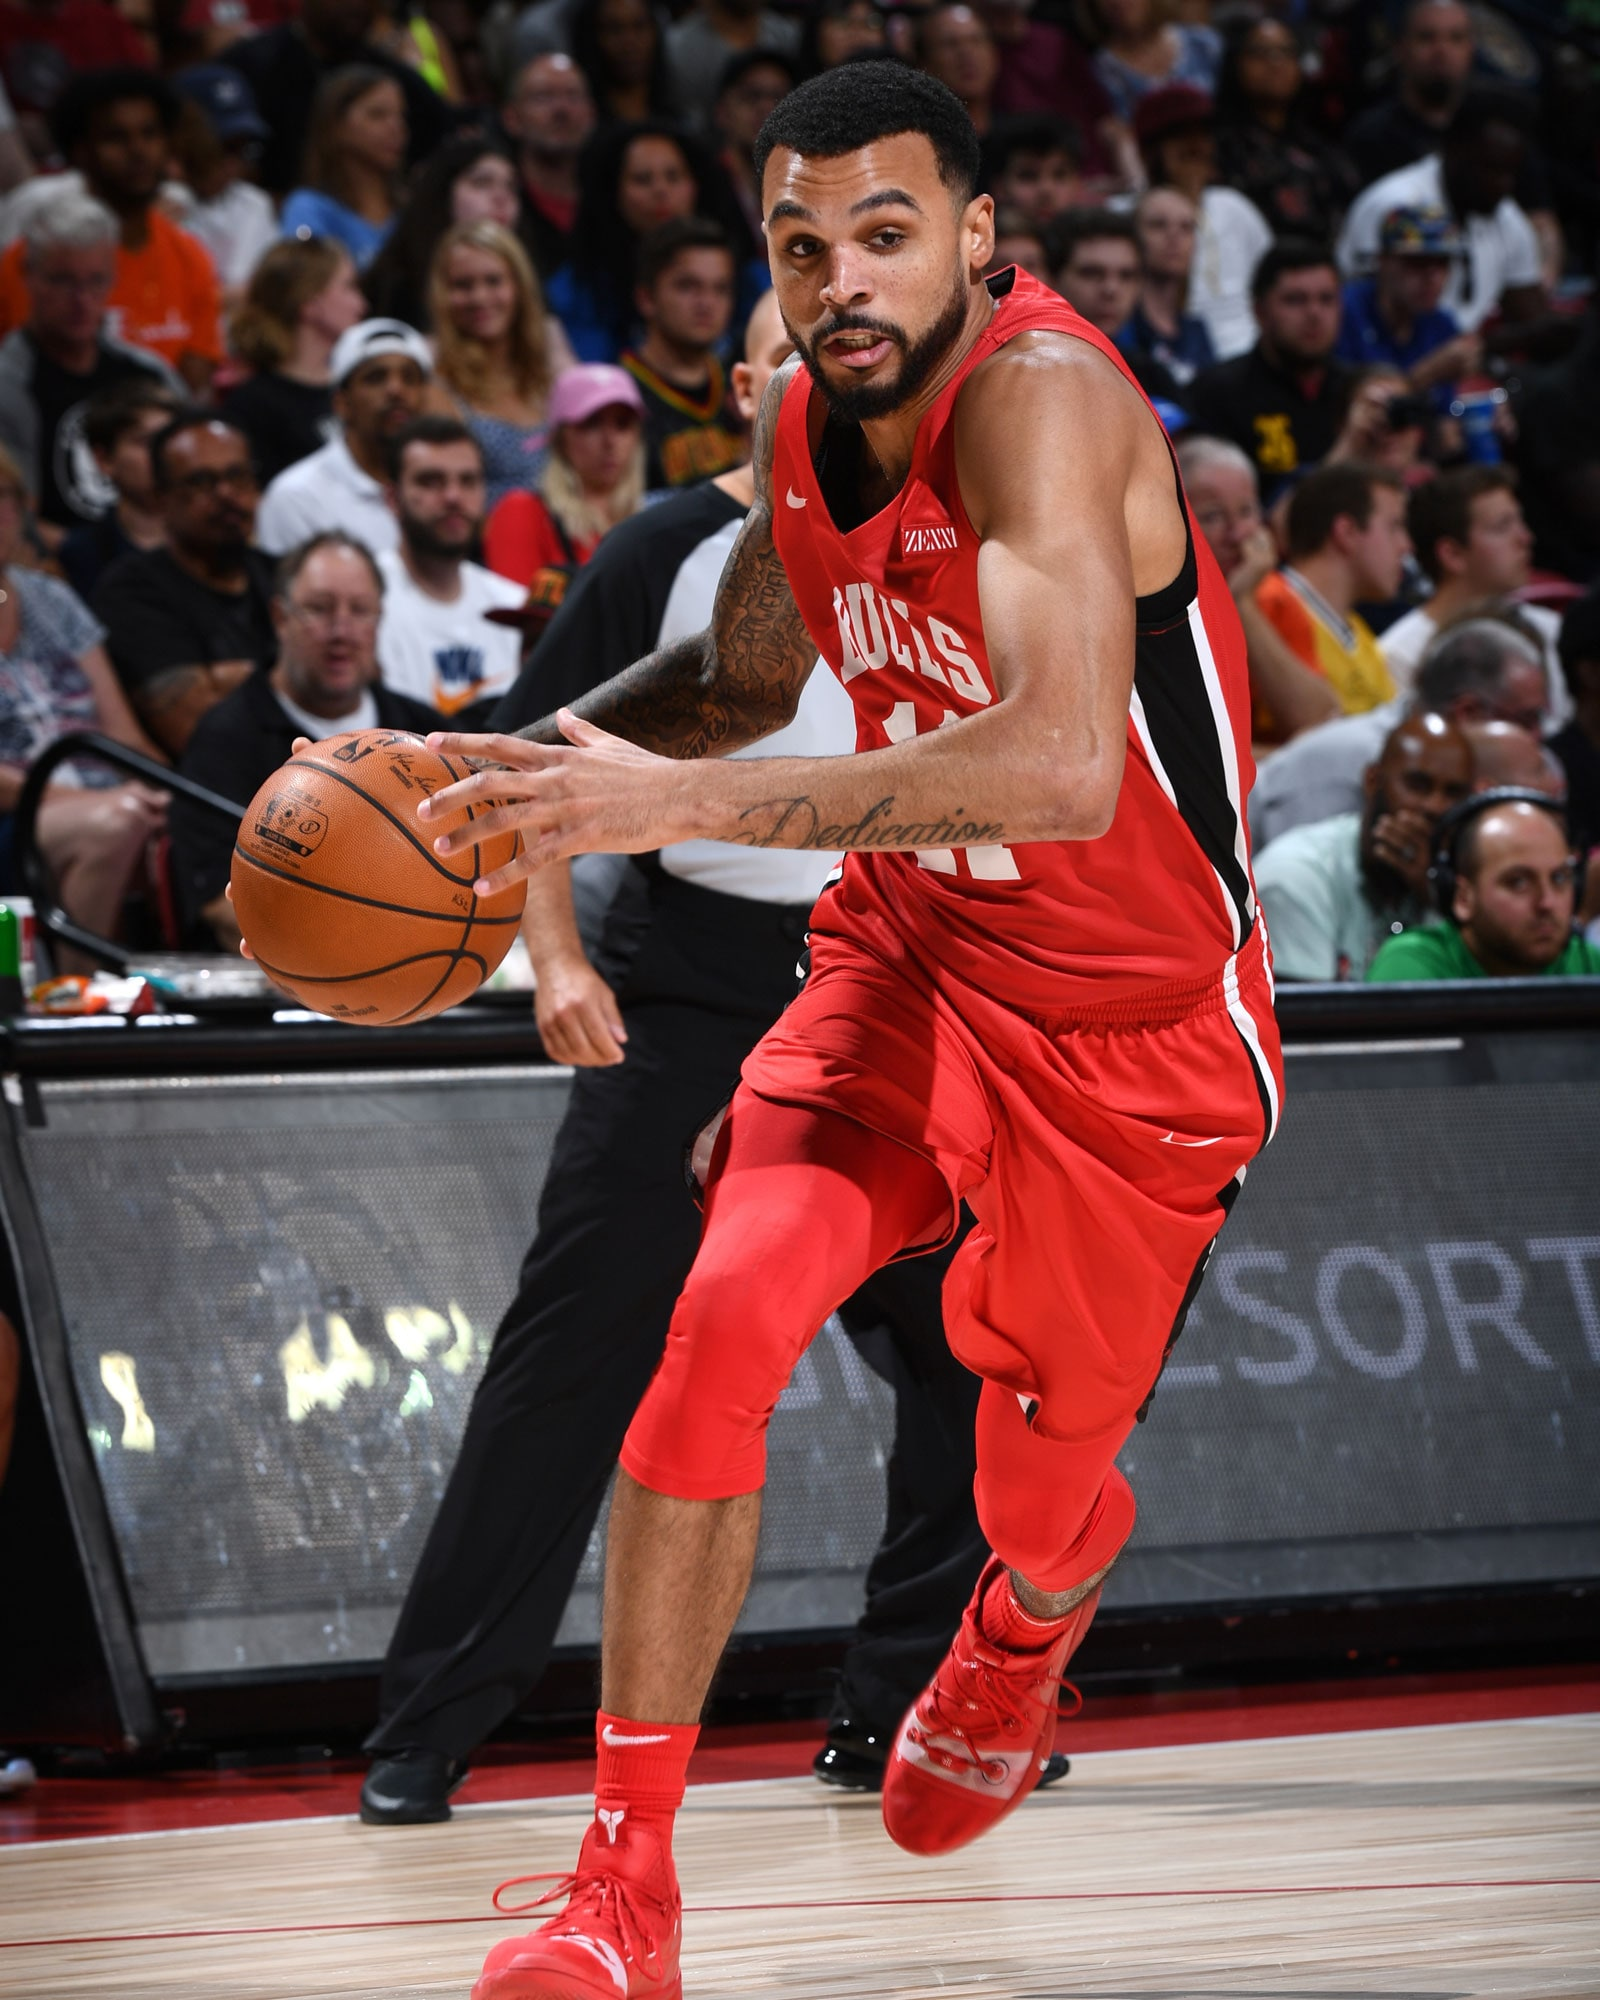 Mychal Mulder #11 of the Chicago Bulls drives to the basket against the Cleveland Cavaliers during Day 3 of the 2019 Las Vegas Summer League on July 7, 2019 at the Thomas & Mack Center in Las Vegas, Nevada.